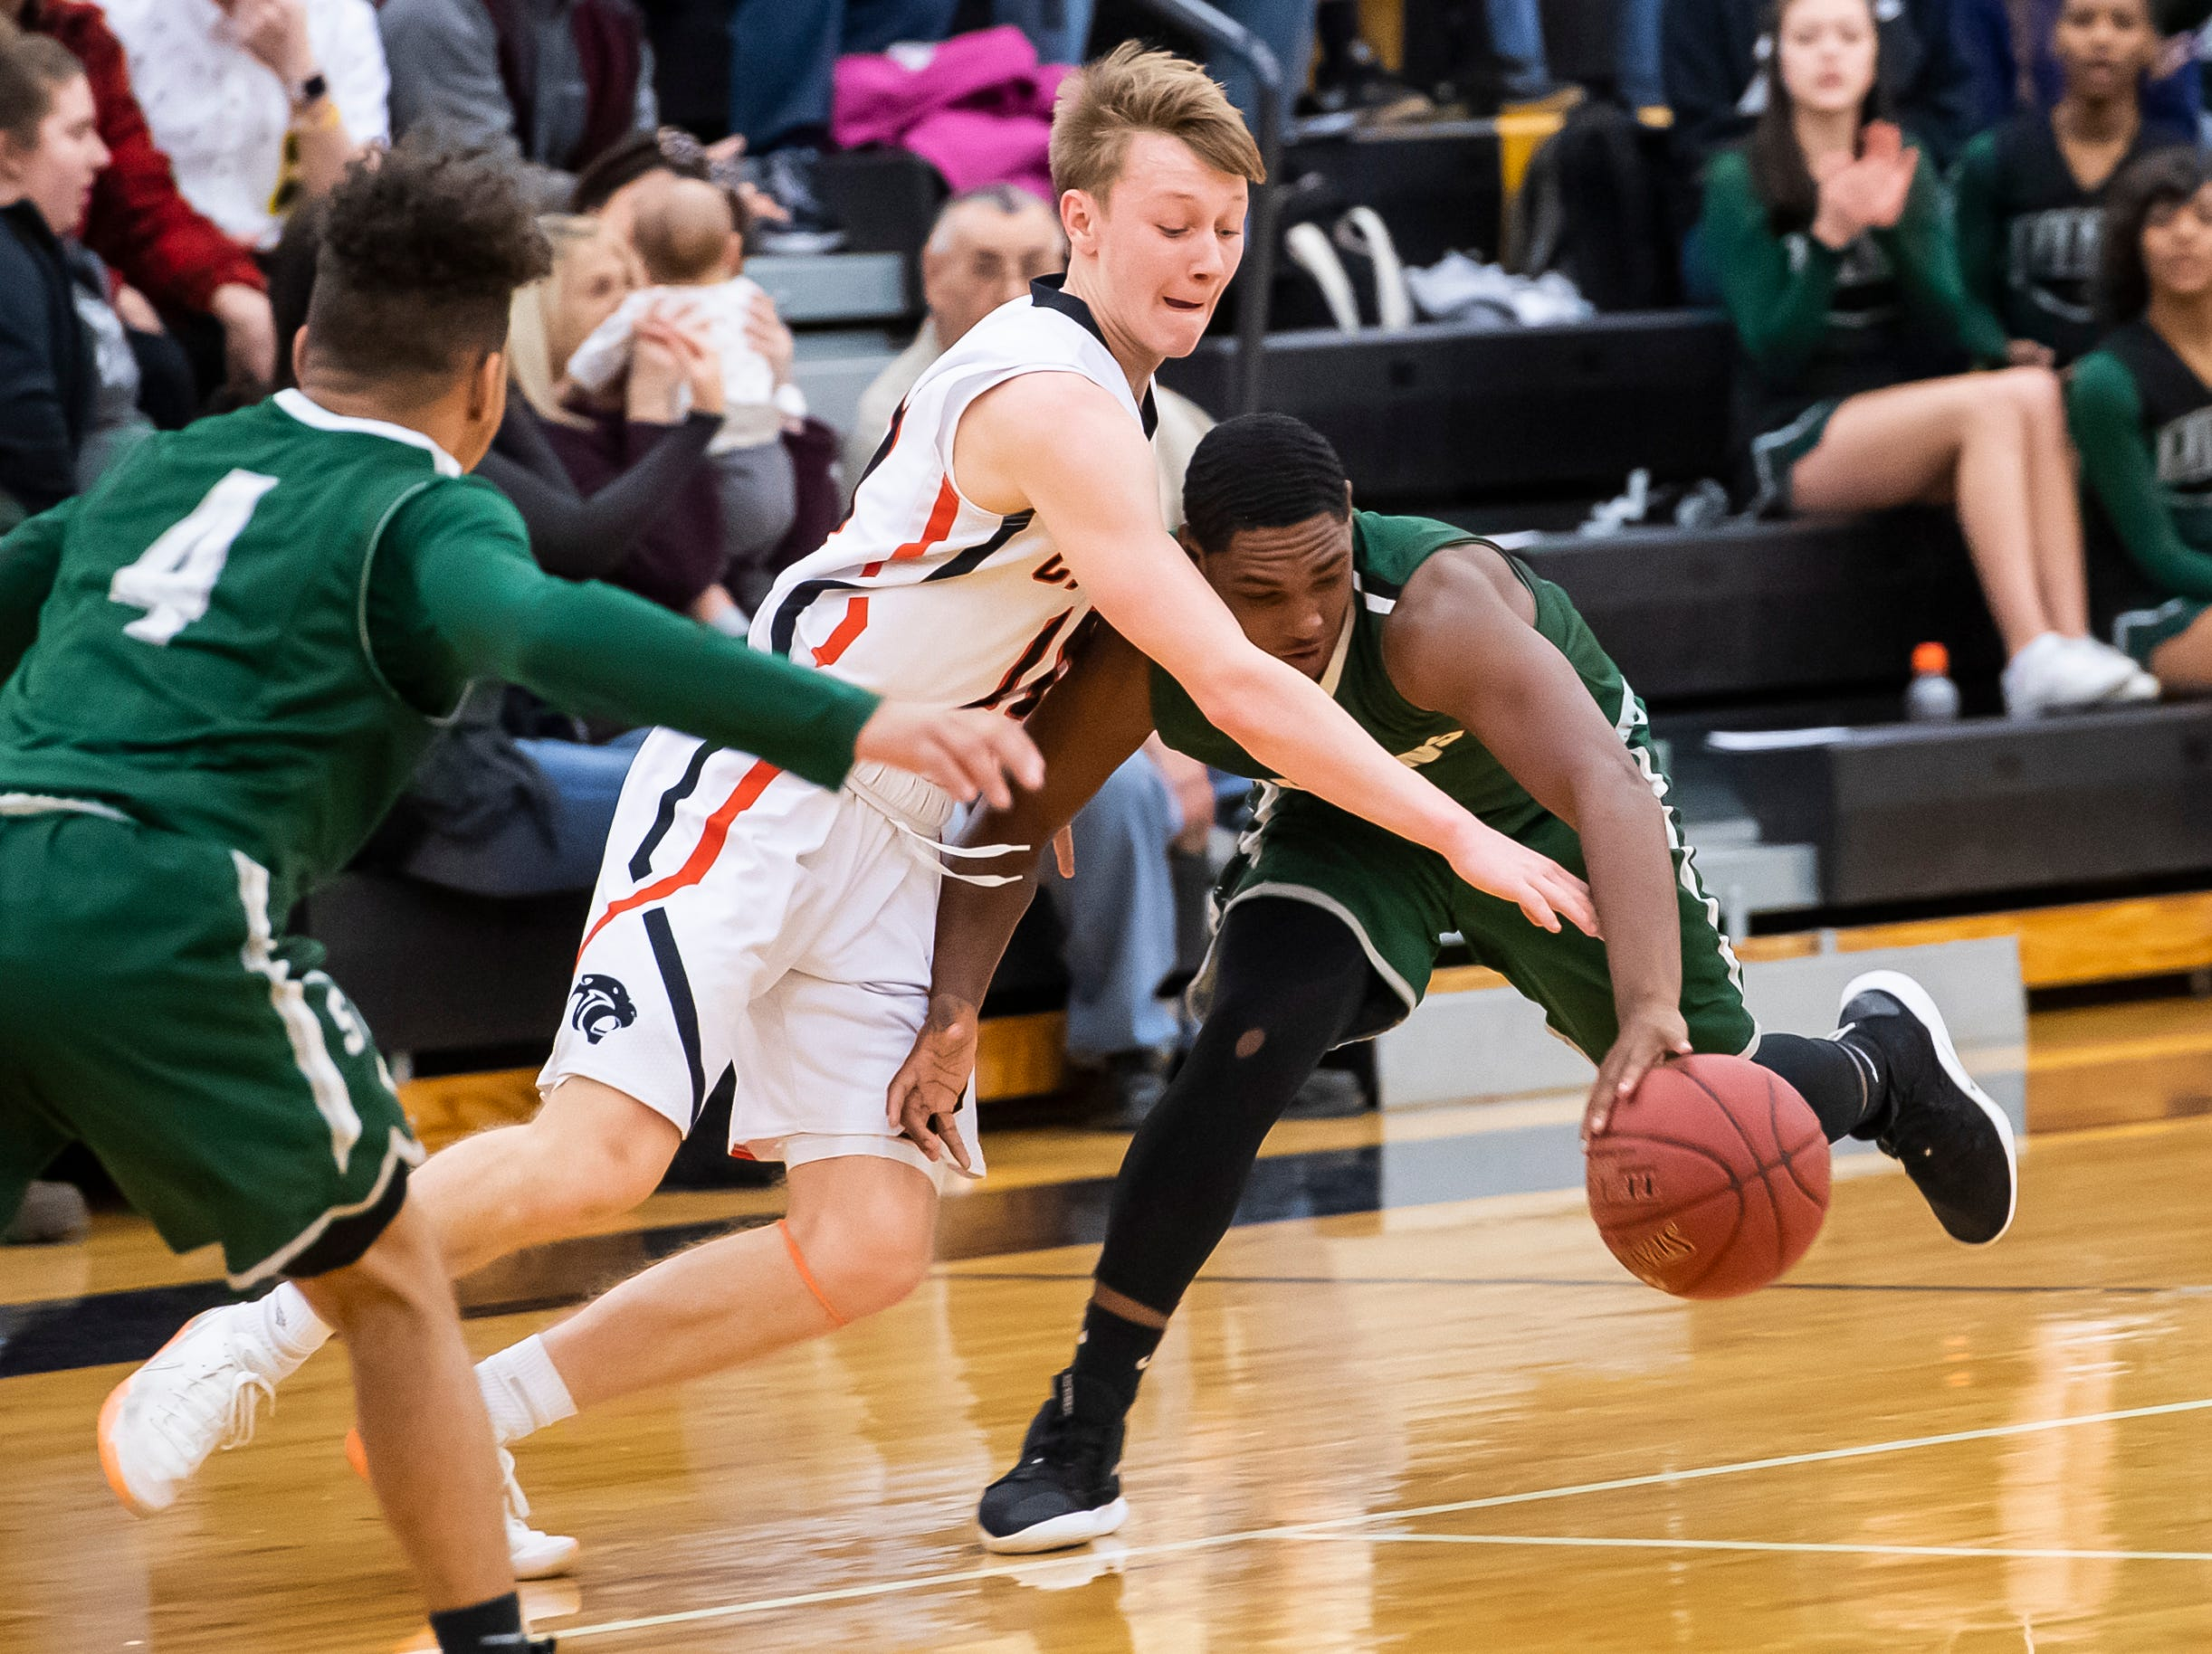 """Central York's Evan Eisenhart reaches for the ball as York County Tech's Jamal Jackson dribbles down the court in a YAIAA quarterfinal game at Red Lion High School Saturday, February 9, 2019. The Panthers won 74-43. Eisenhart led all players with 31 points. """"Every different night any different guy can bring it,"""" Central York head coach Kevin Schieler said. """"Tonight was Evan's night."""""""